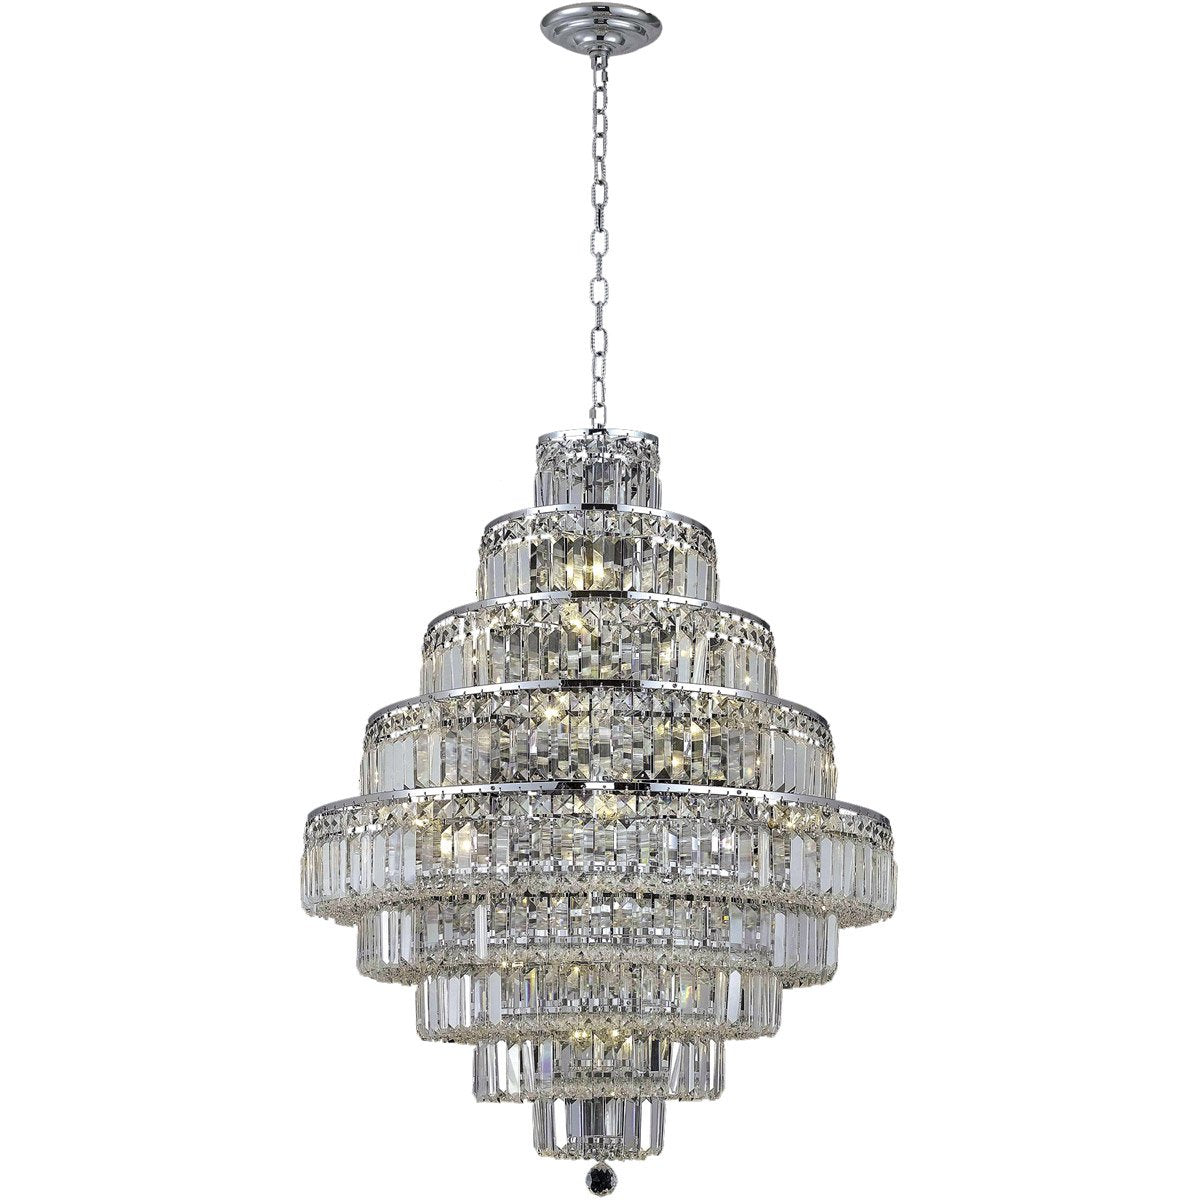 Maxime 30 Crystal Chandelier With 20 Lights - Chrome Finish And Clear / Royal Cut Crystal Chandelier